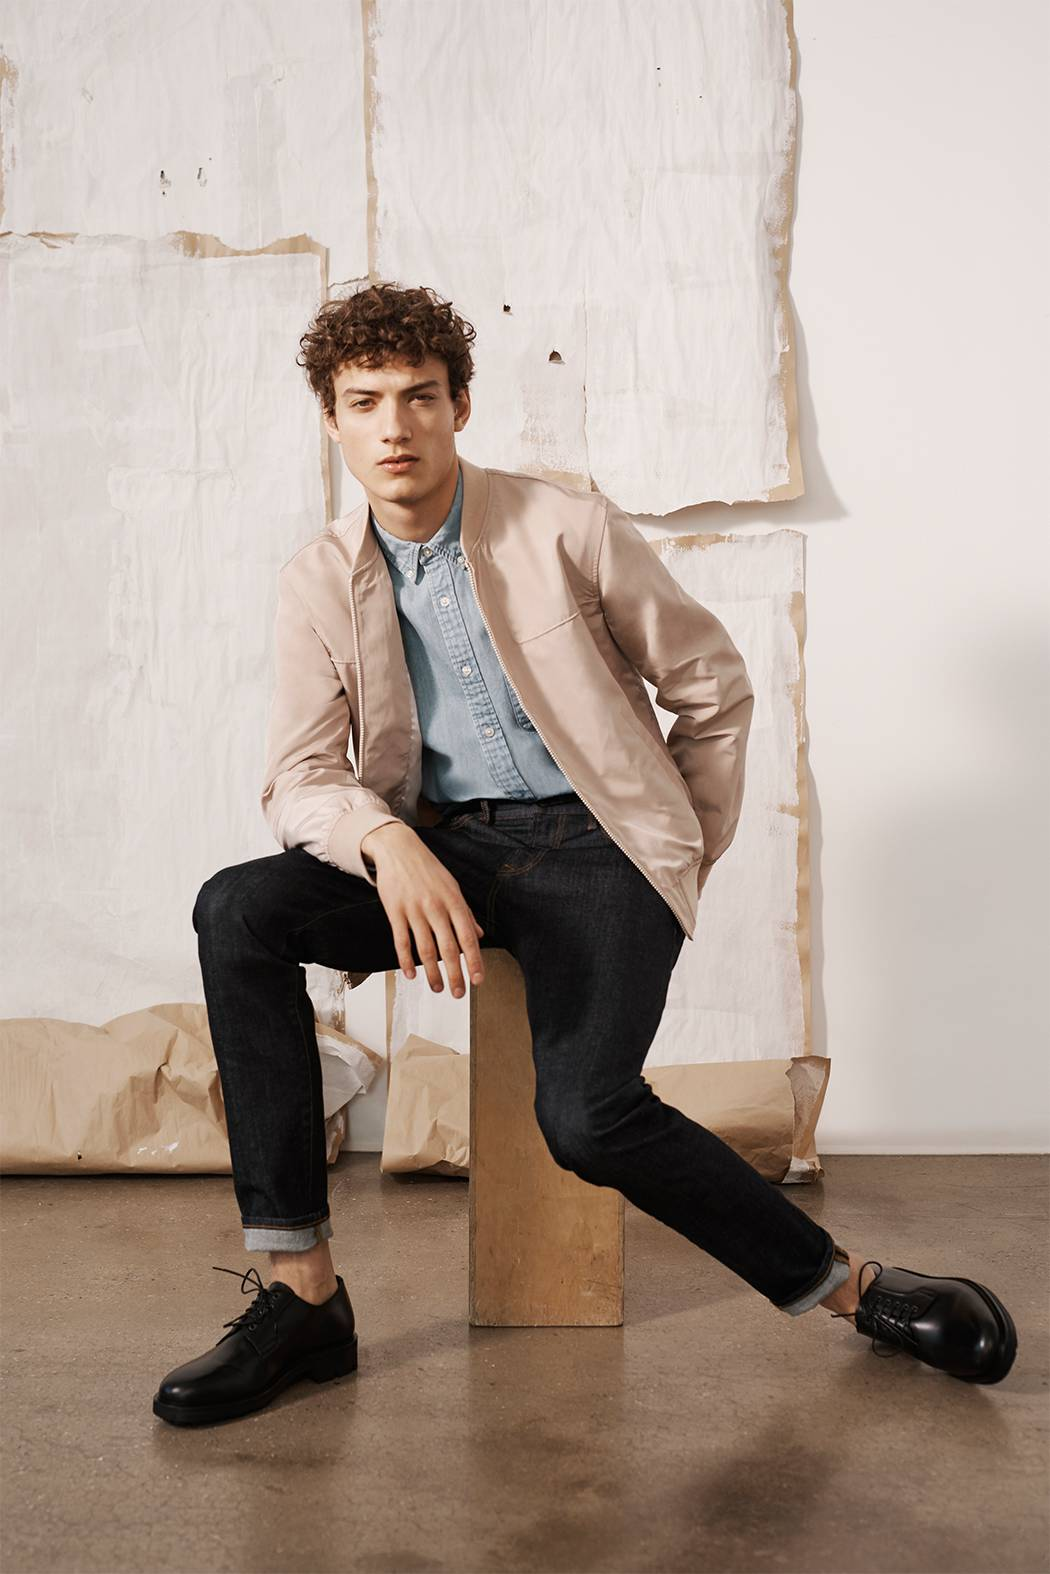 https://www.clubmonaco.ca/on/demandware.static/-/Library-Sites-ClubMonaco/en_CA/v1561547102506/Men New Arrivals 1_January_New-Arrivals_13.jpg